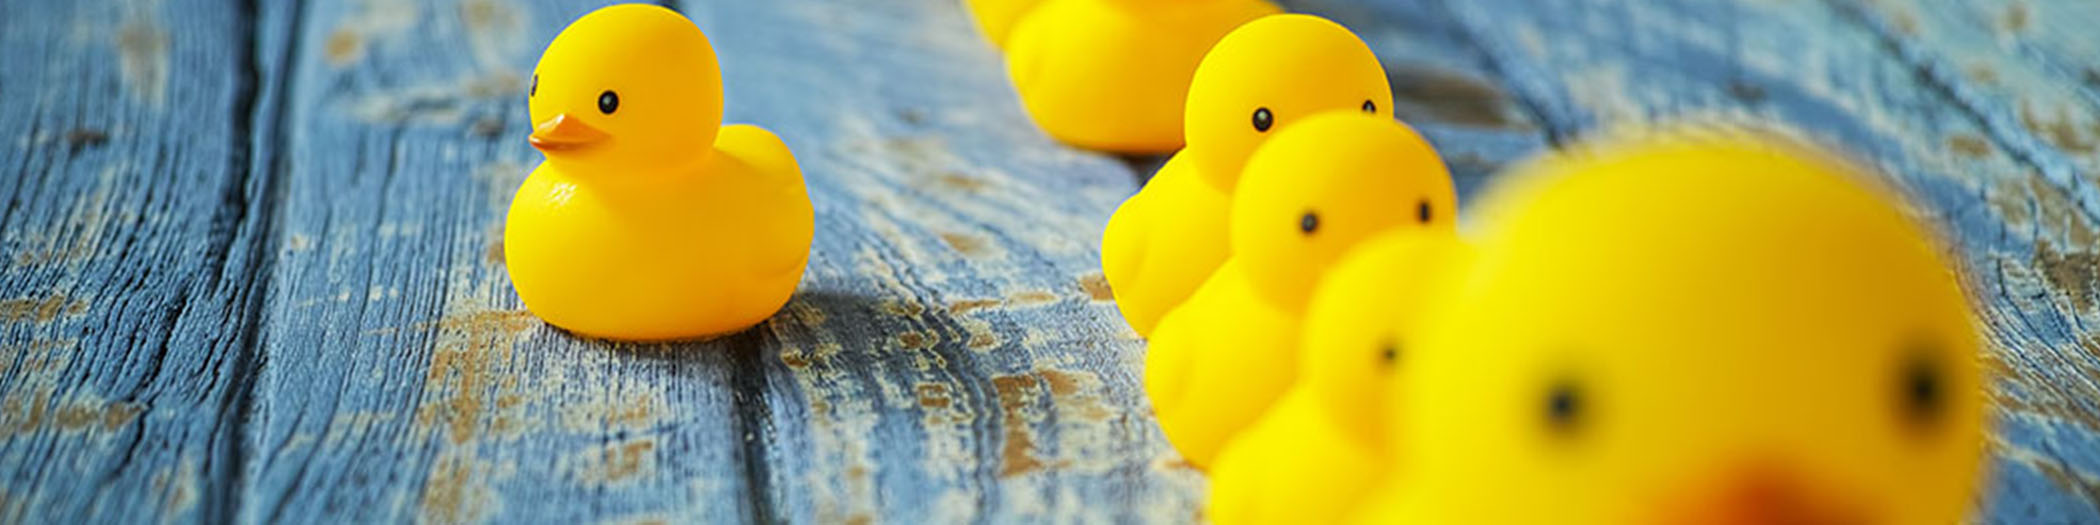 Rubber ducks in a row with one apart